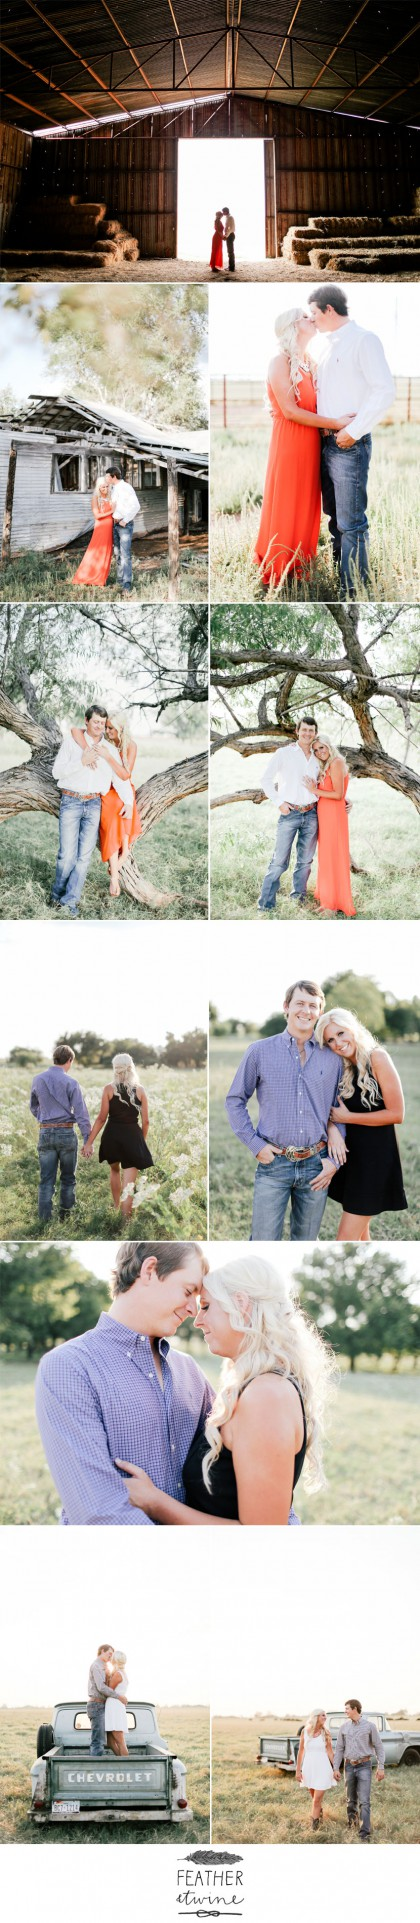 Image in the blog=> Southern Engagement Shoot by Feather & Twine Photography - F%26T_Engagement_BLOG.jpg